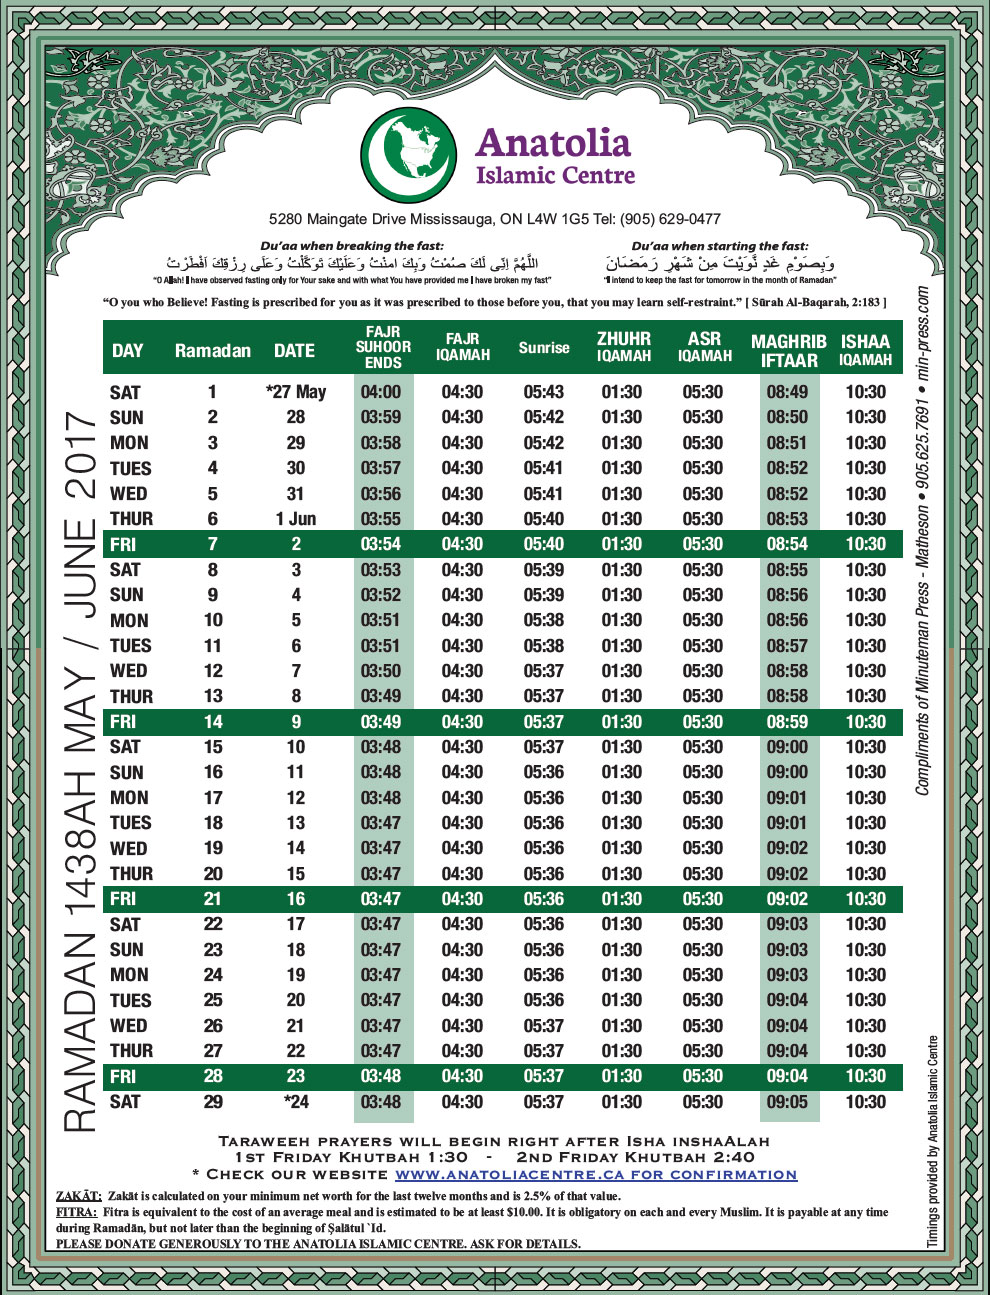 Islamic Prayer Calendar 2019 Ramadan Calendar   Anatolia Islamic Center